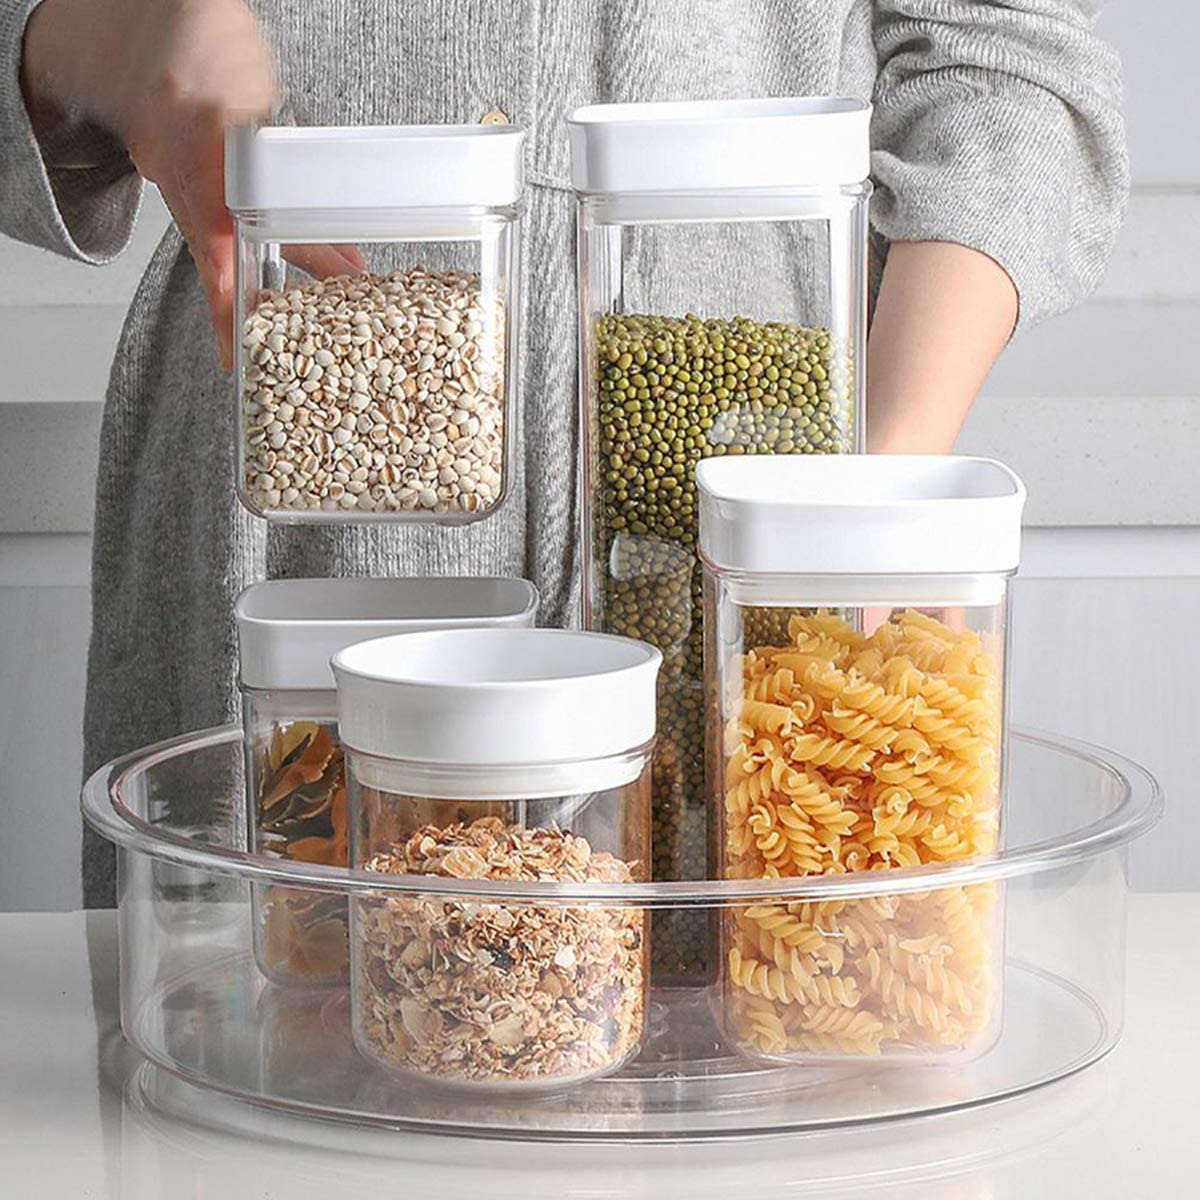 Lazy Susan Cabinet Organizer-12 Inch Turntable Round Clear Spinning Rotating Organization /& Storage Container Bin Plastic Condiments Spice Rack with Divider for Kitchen,Pantry,Fridge,Countertop Makeup